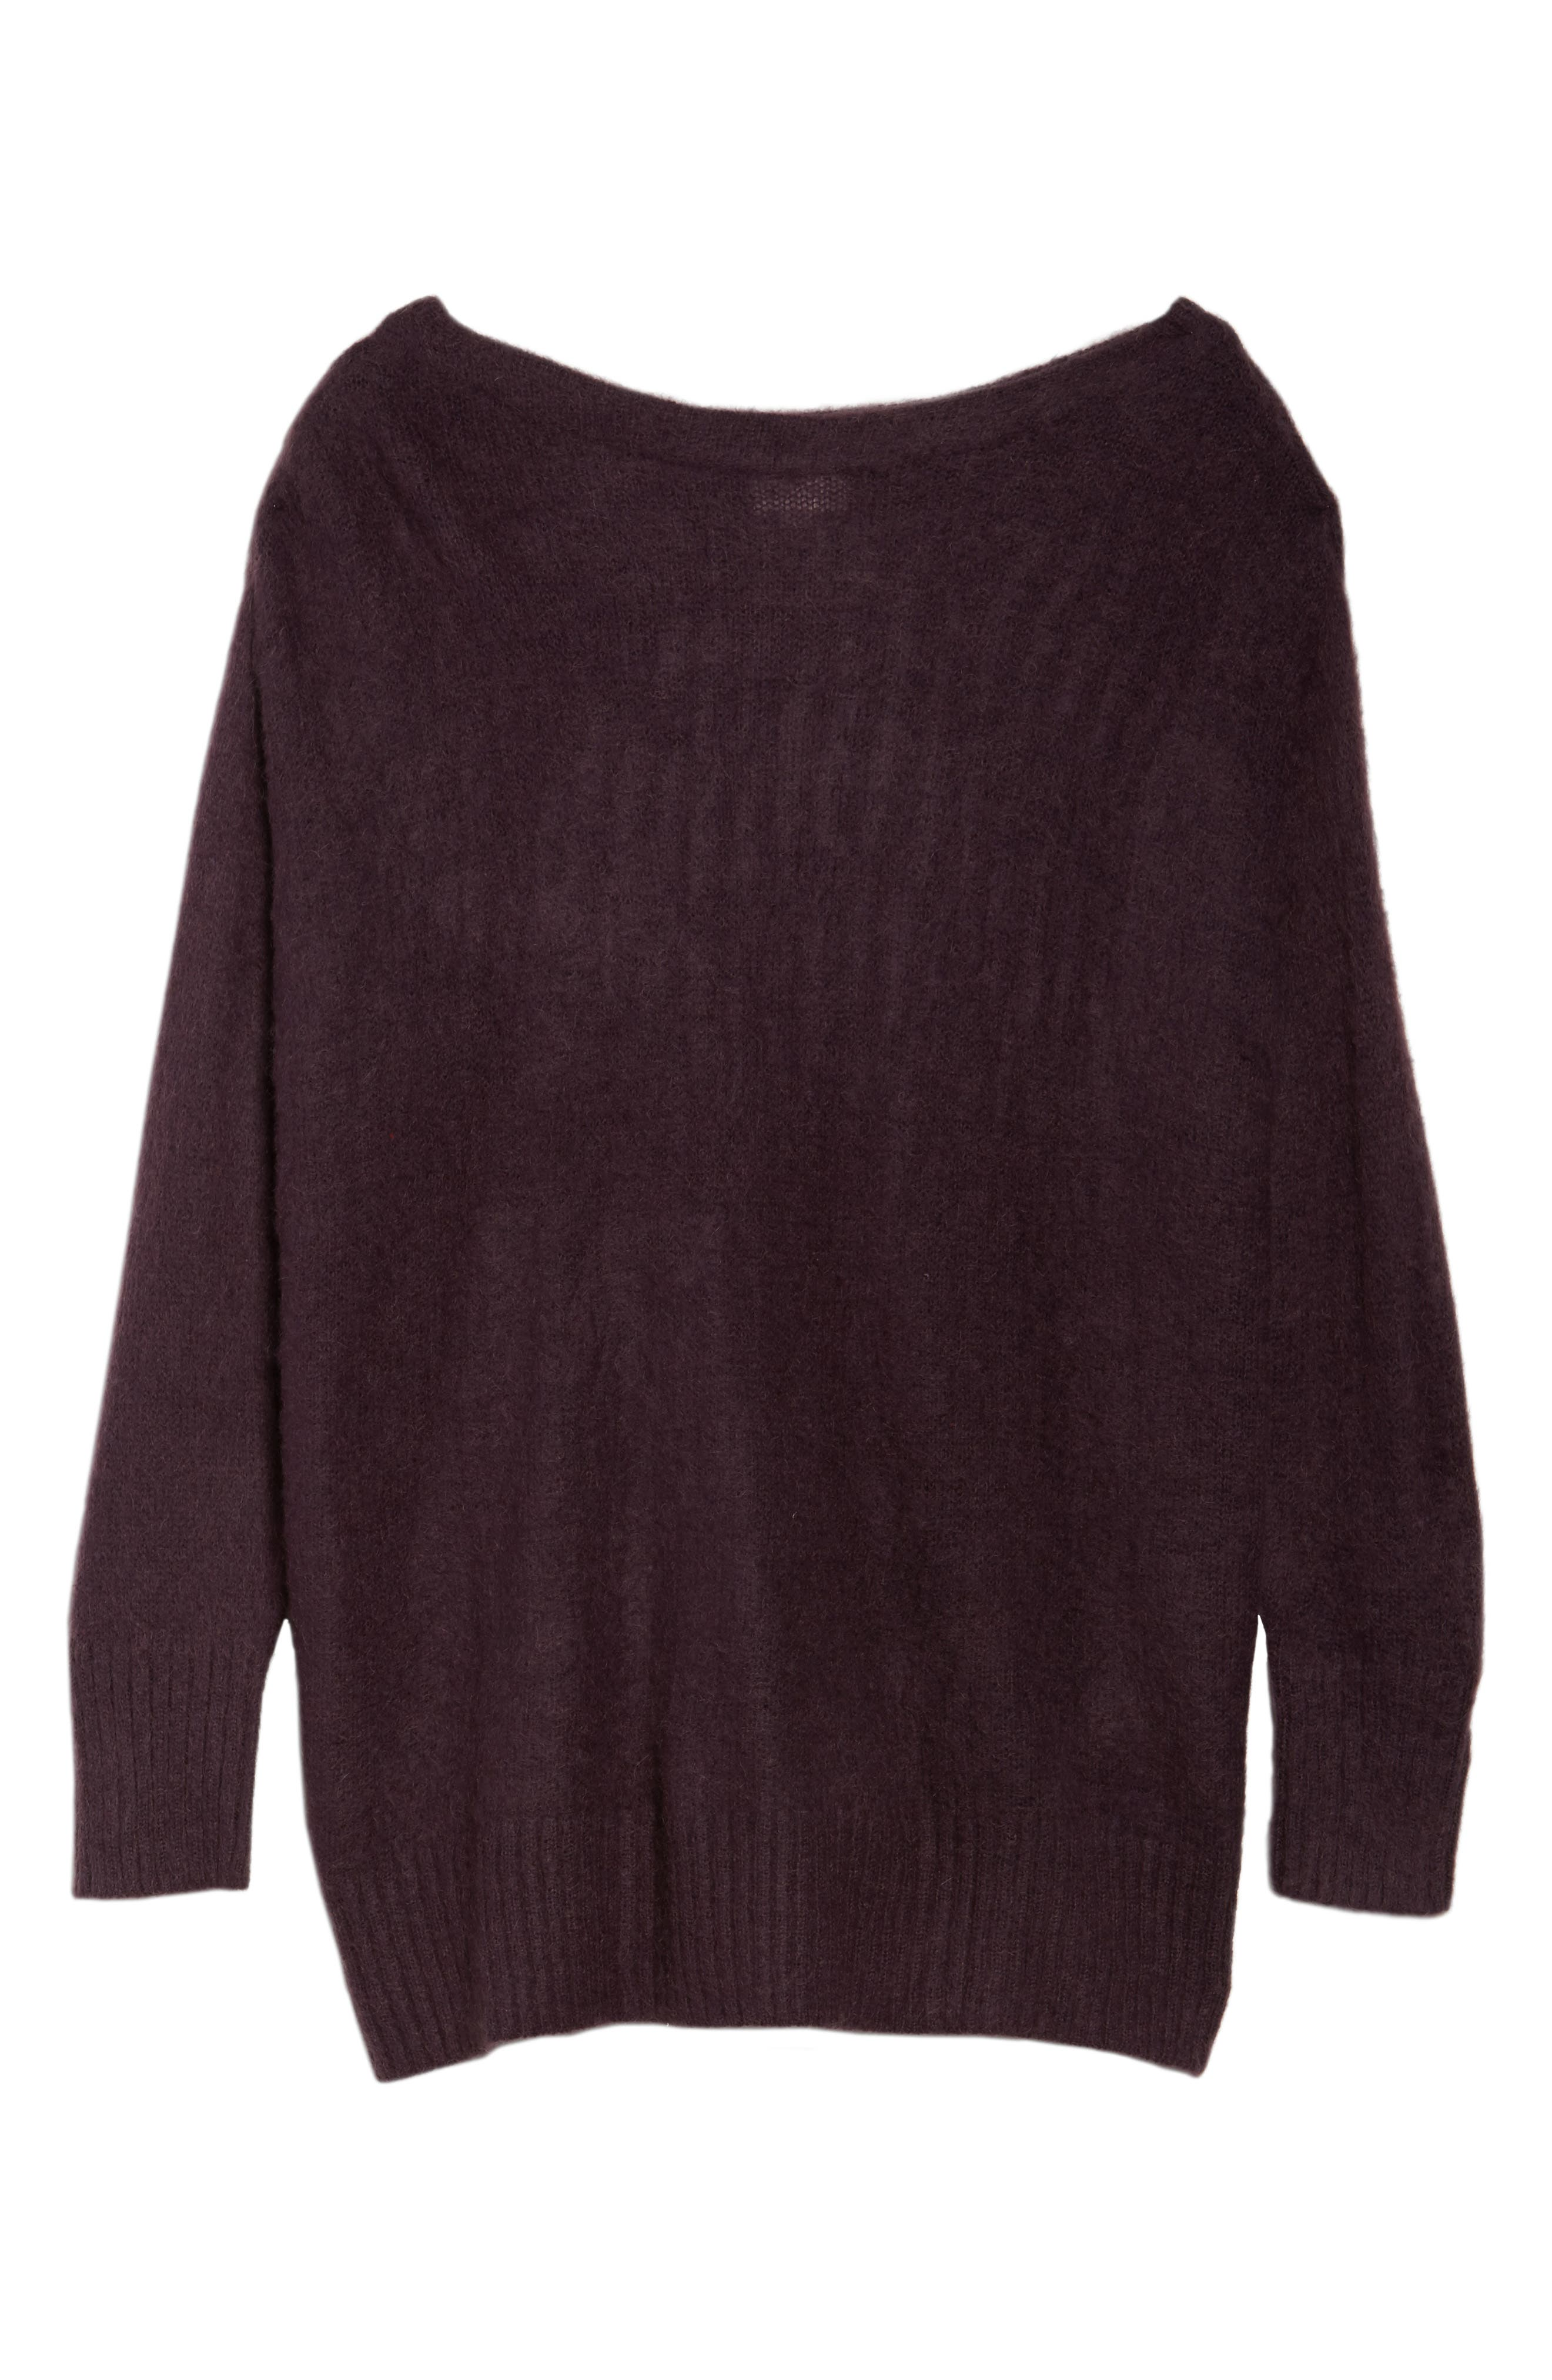 Long Sleeve Brushed Sweater,                             Alternate thumbnail 6, color,                             501